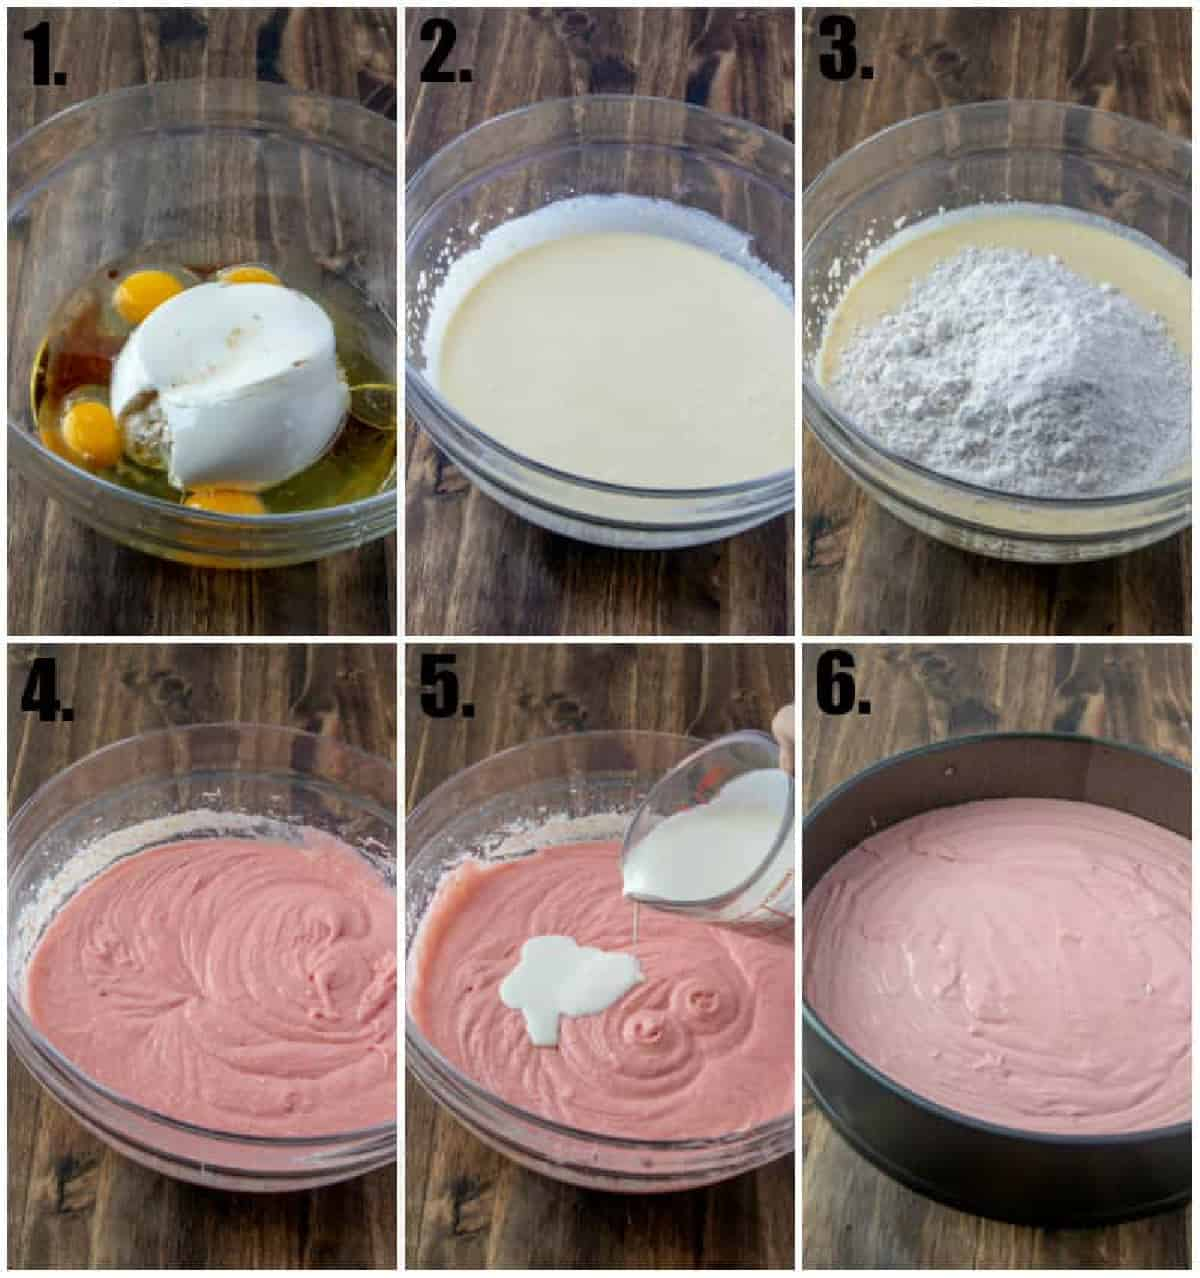 Step by step photos on how to make a Strawberry Ricotta Cake